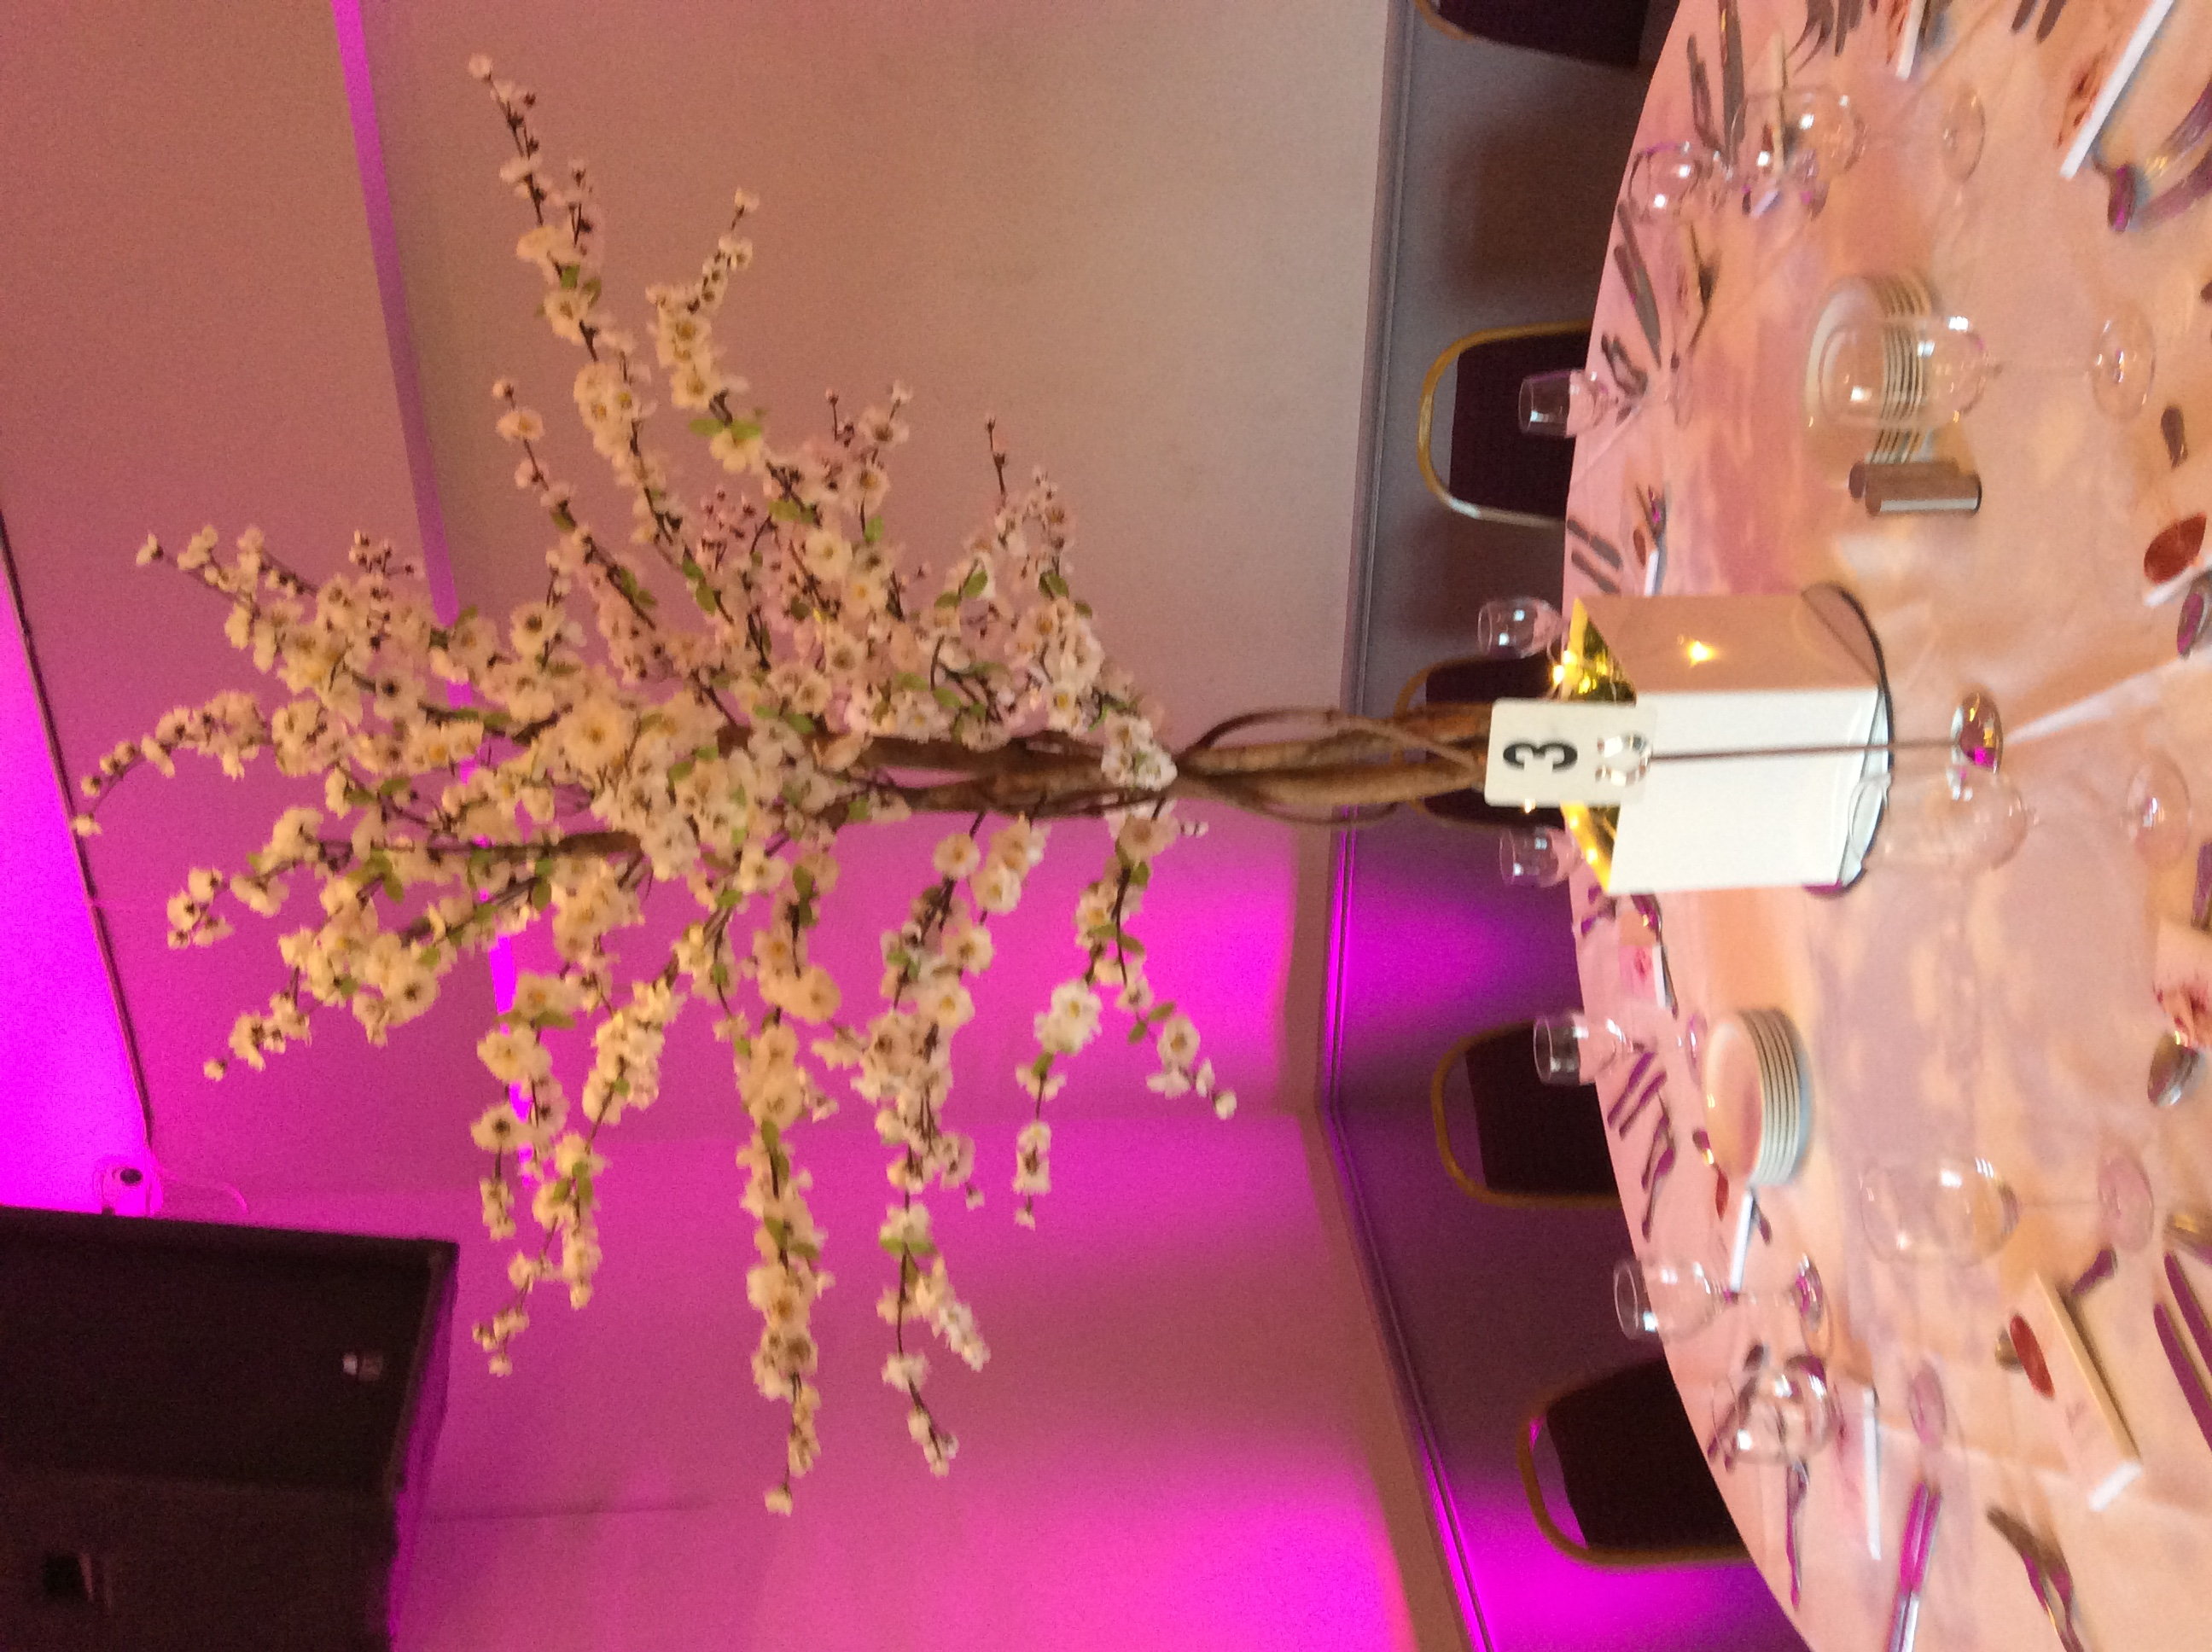 White Cherry Blossom Reception Table Centre Piece 3